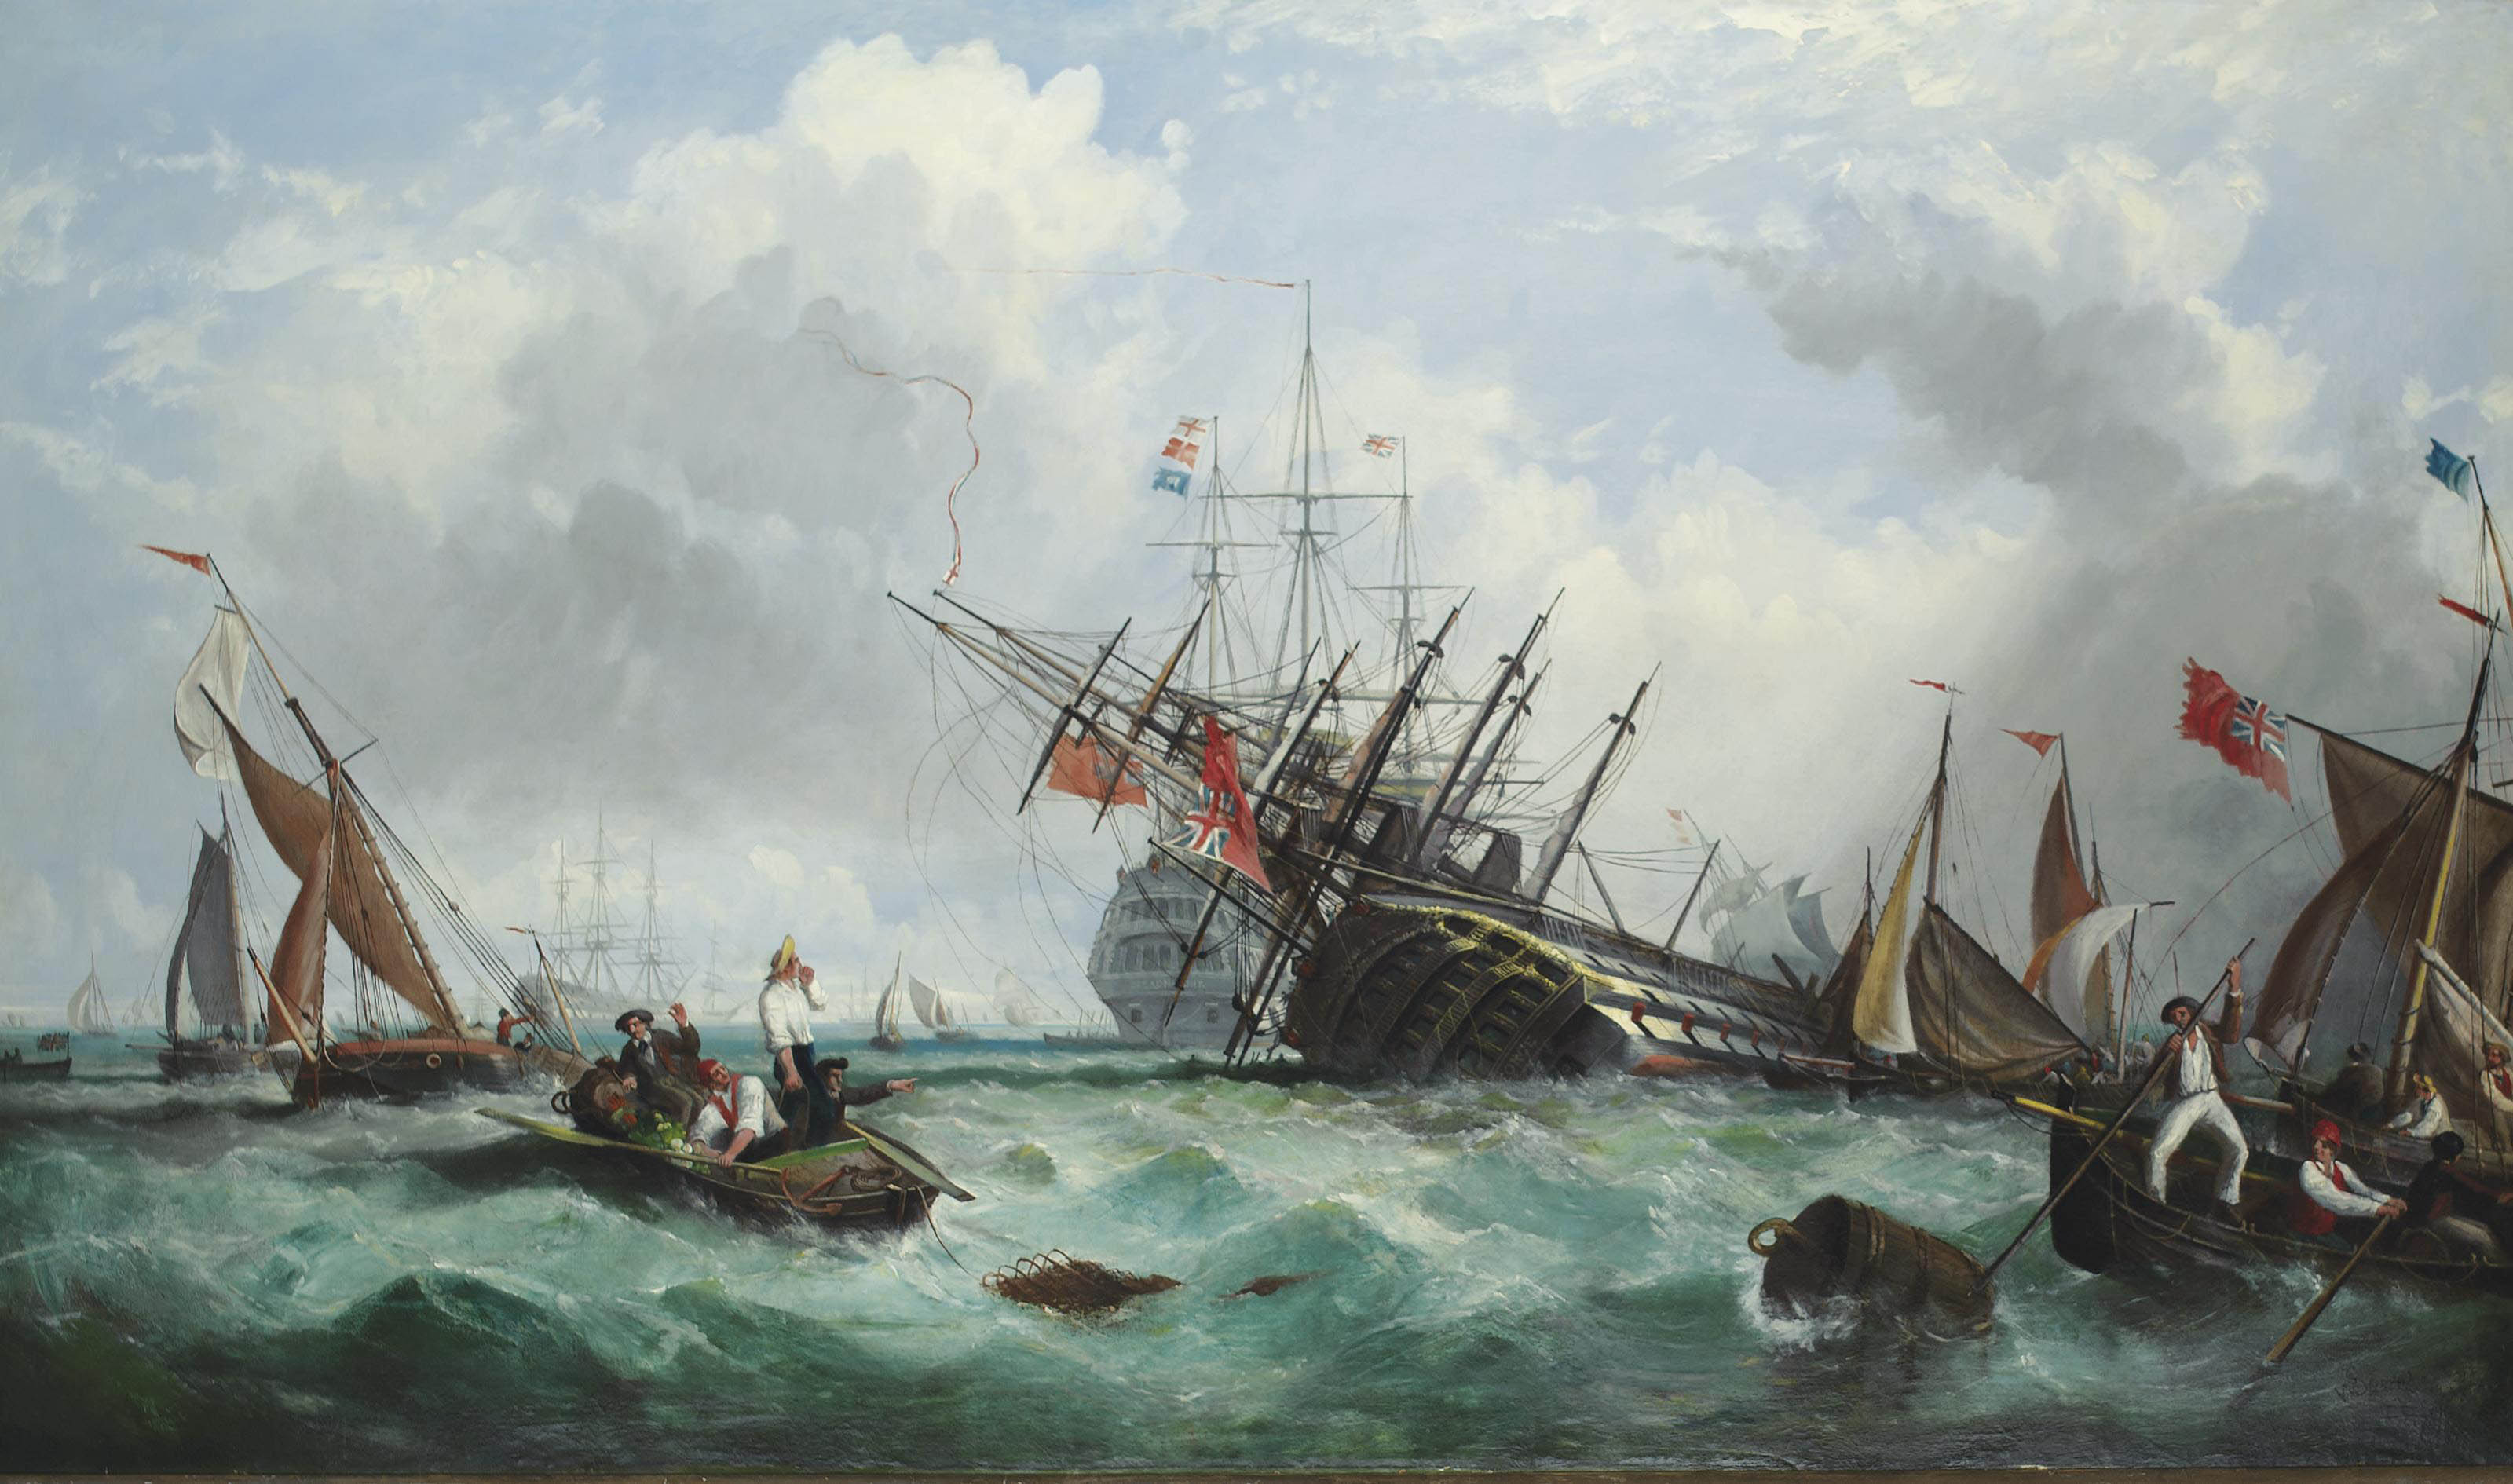 The loss of the 100-gun First Rate H.M.S. Royal George at Spithead, 29th August 1782